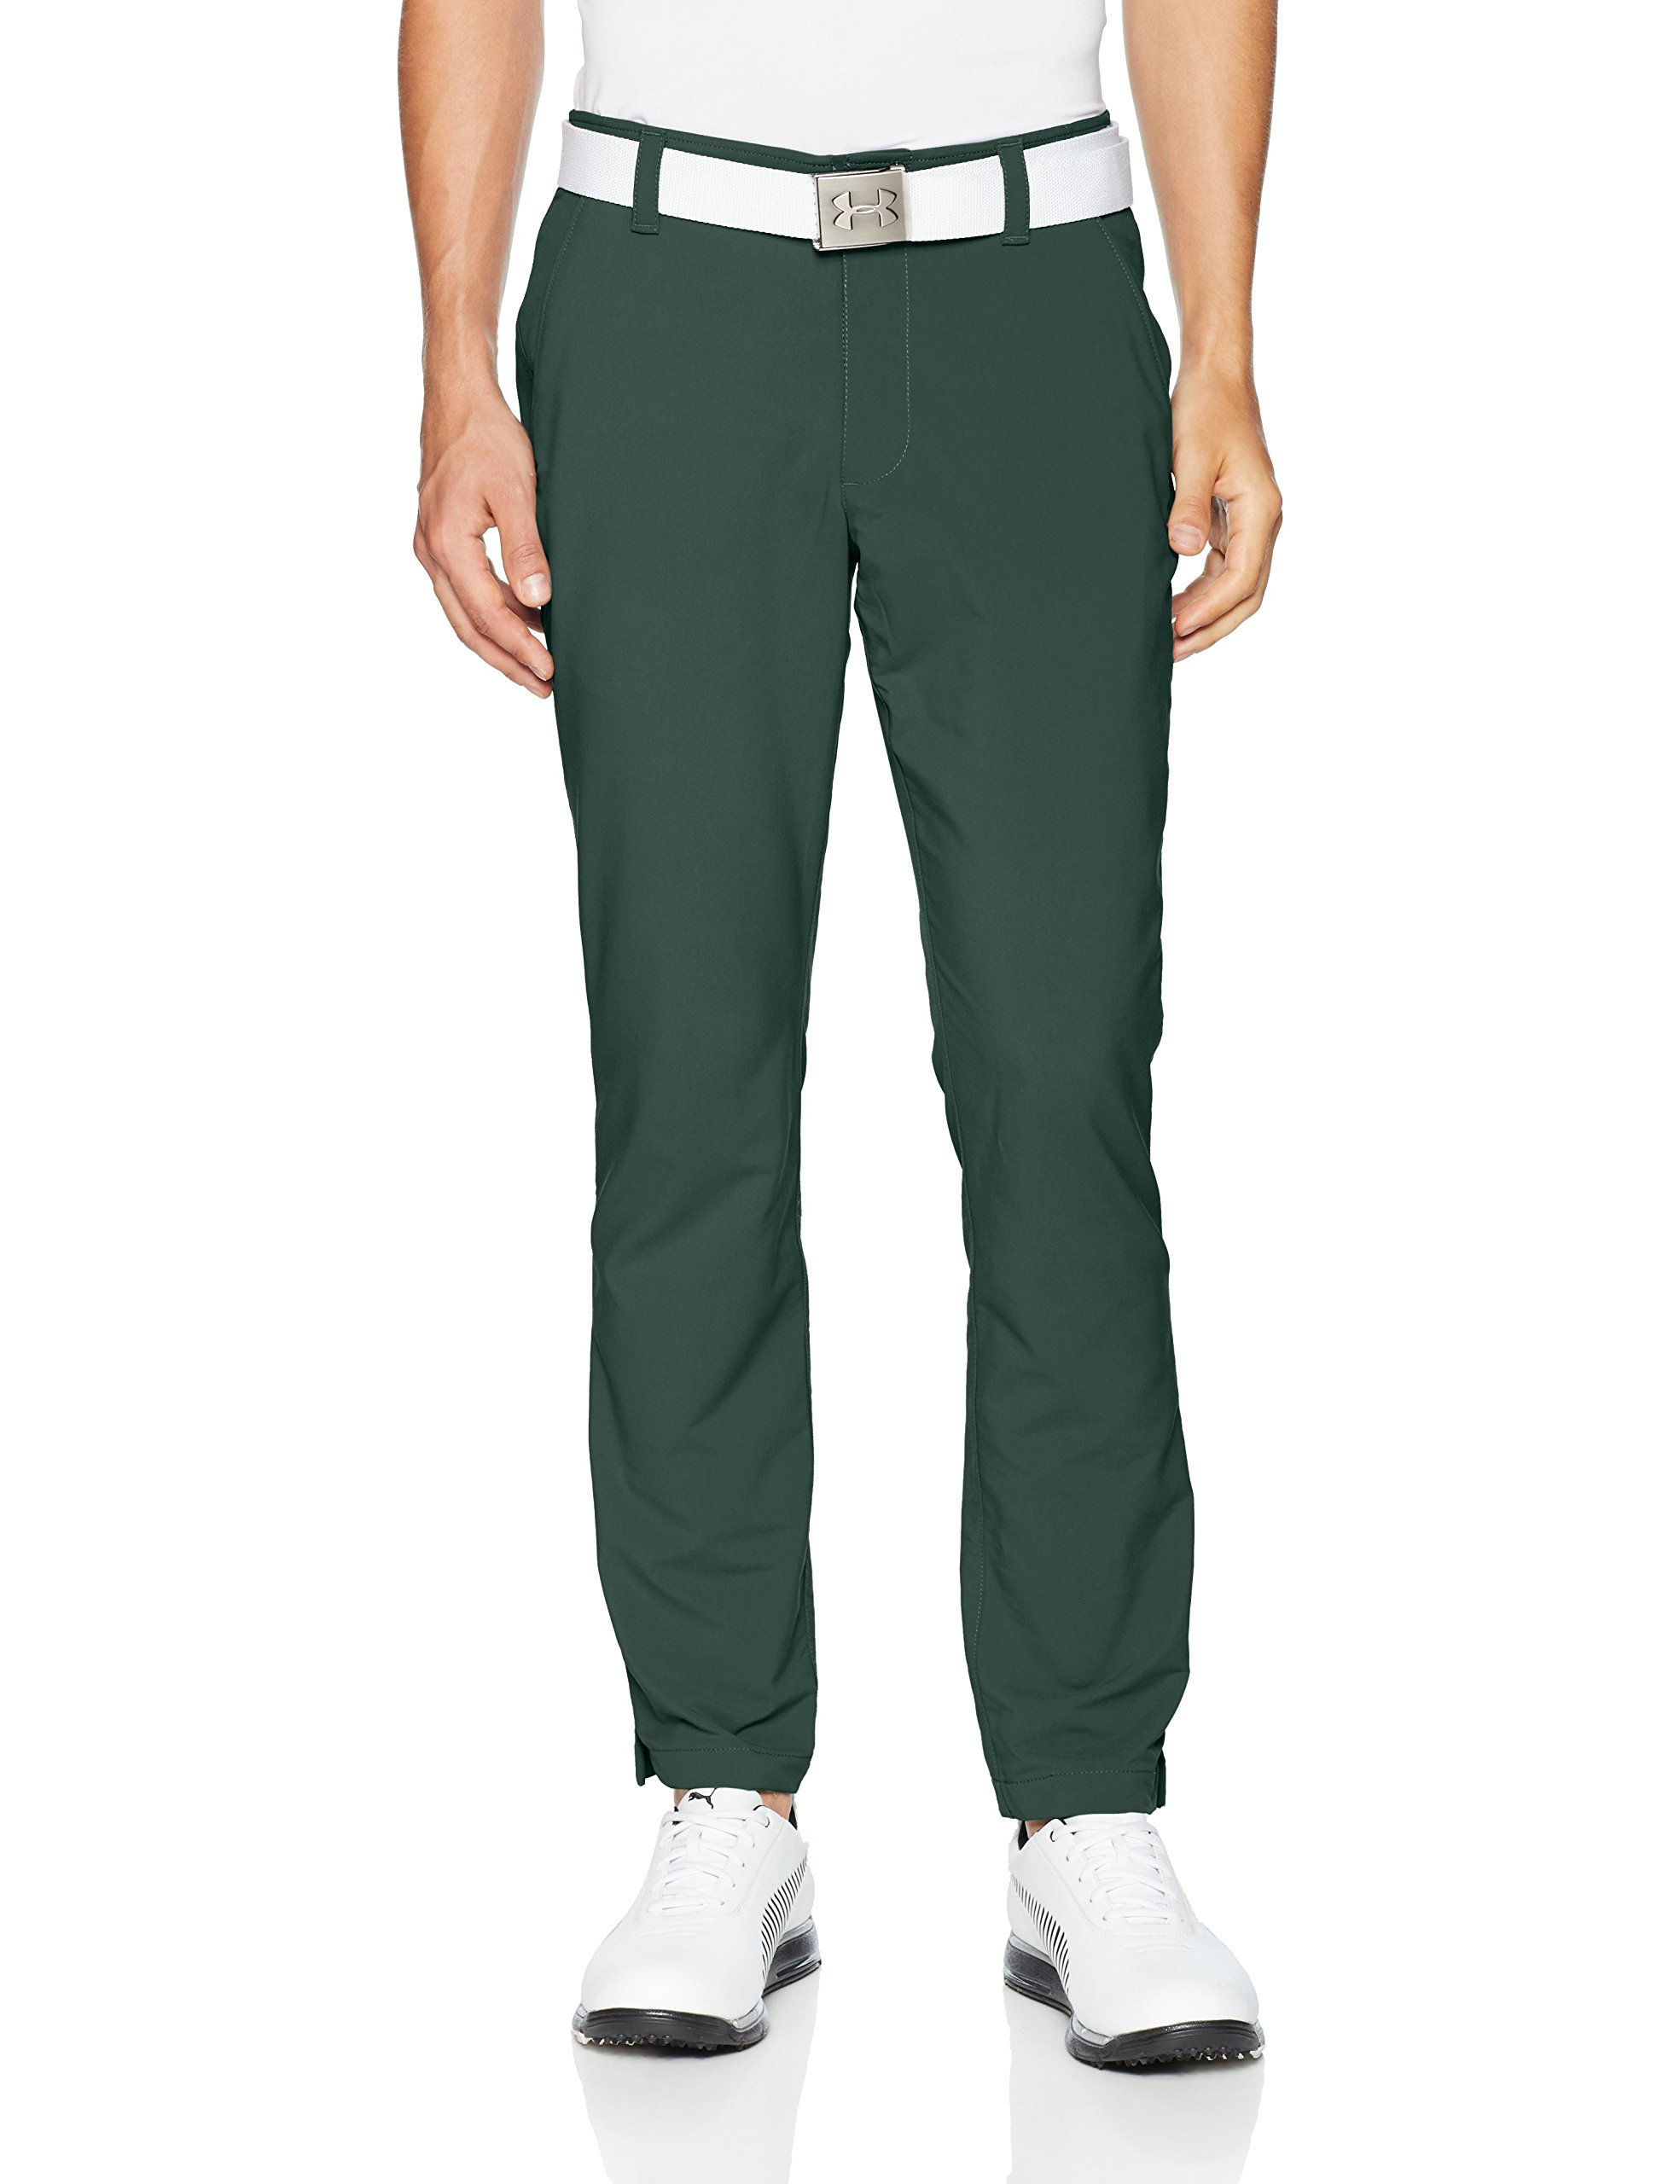 Under Armour Men's Match Play Golf Tapered Pants, Ivy (384)/Ivy, 30/30